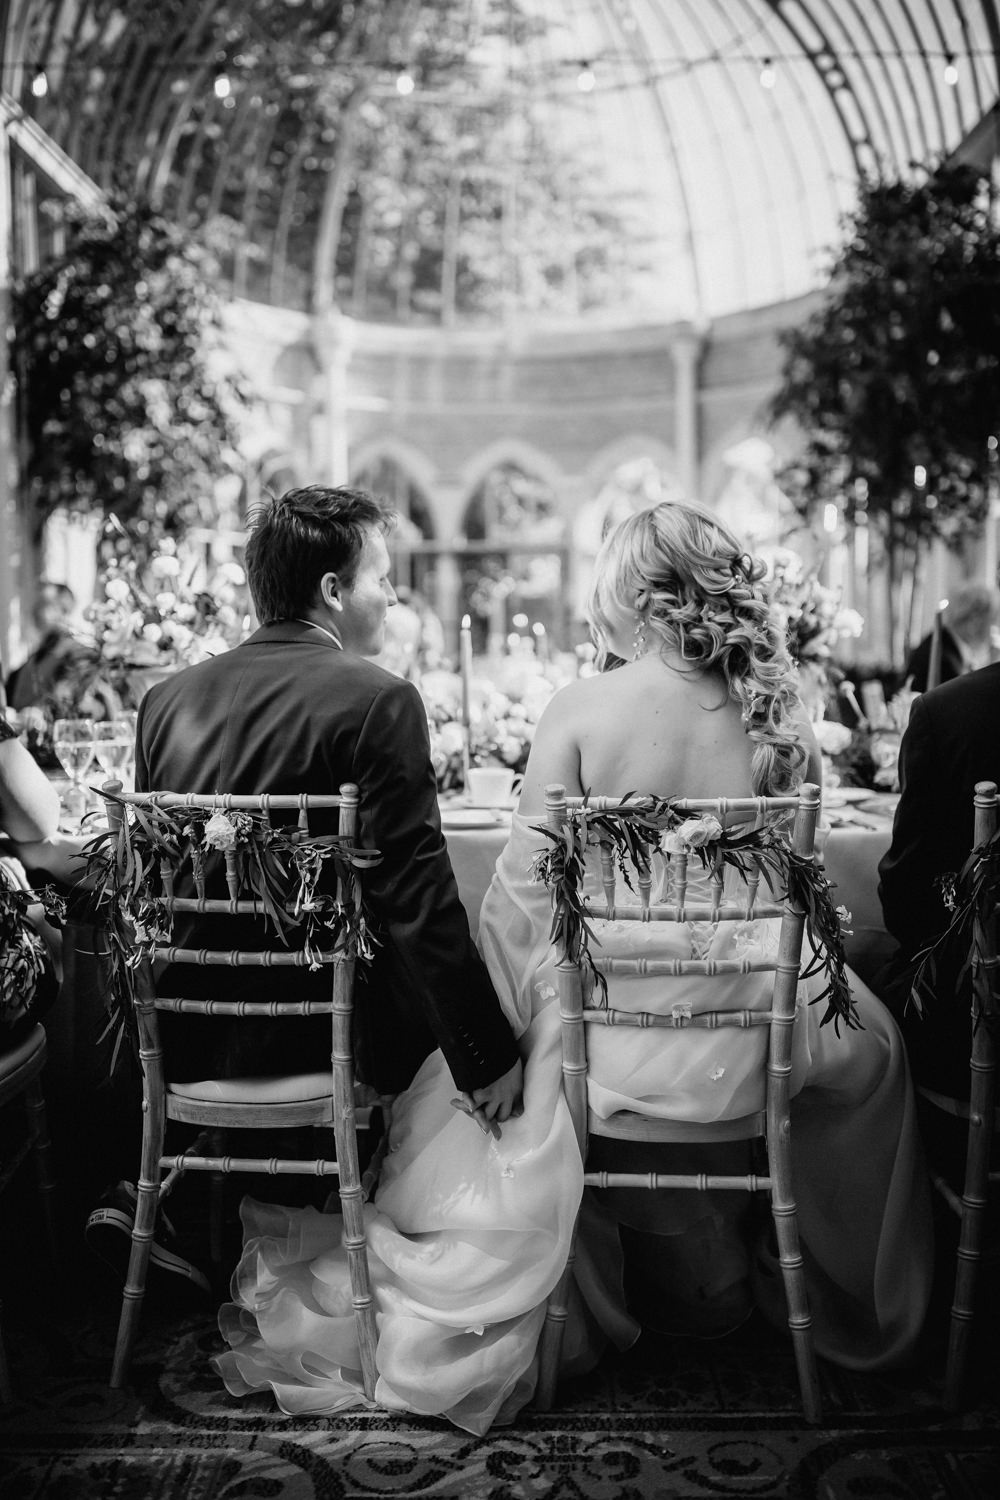 Greenery Chairs Bride Groom Decor Tortworth Court Wedding Sanshine Photography